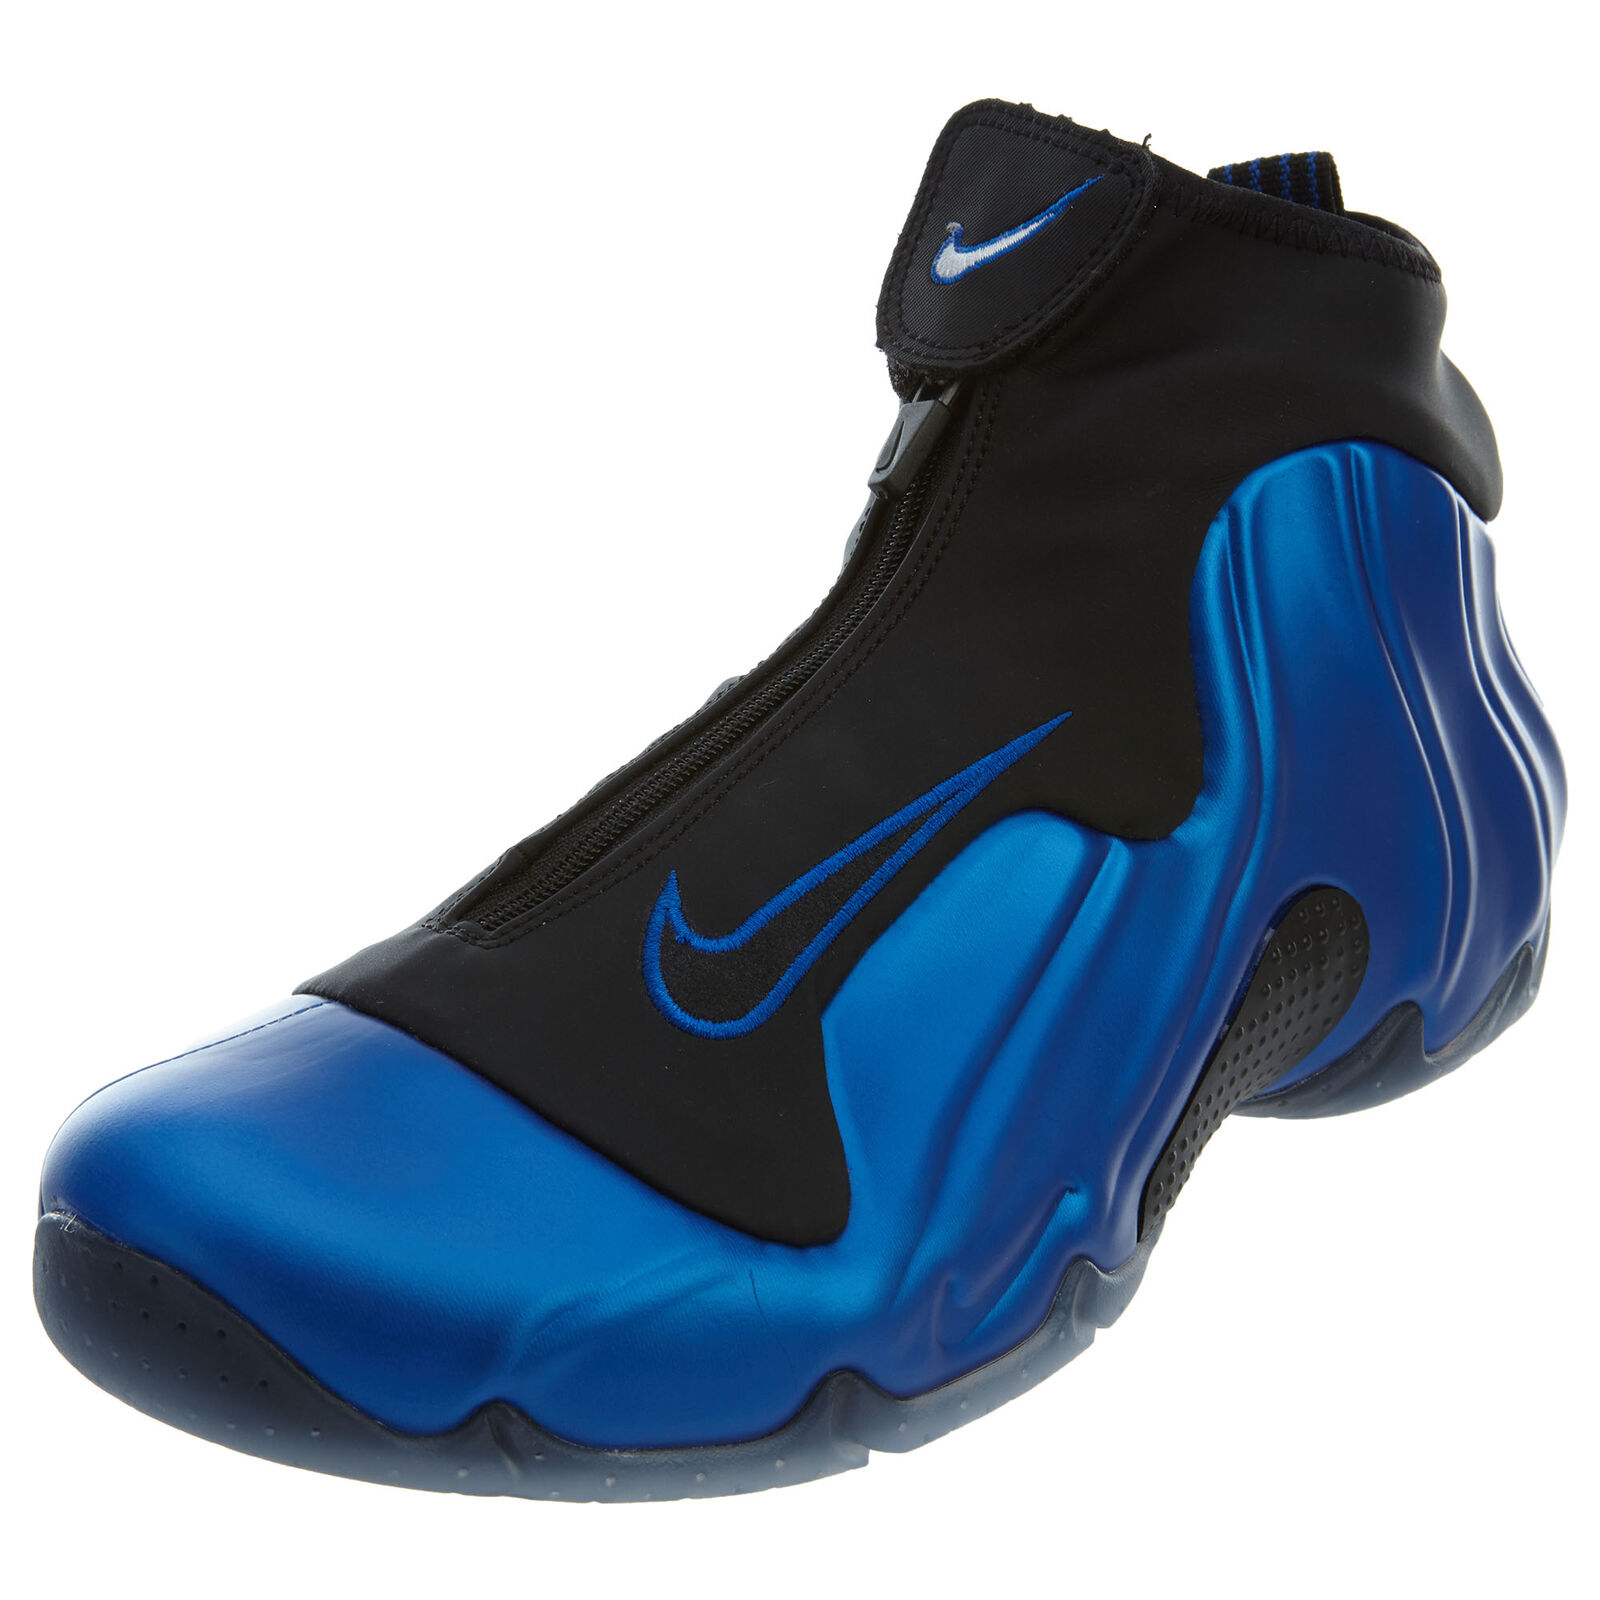 Nike Mens Air Flightposite shoes AO9378-500